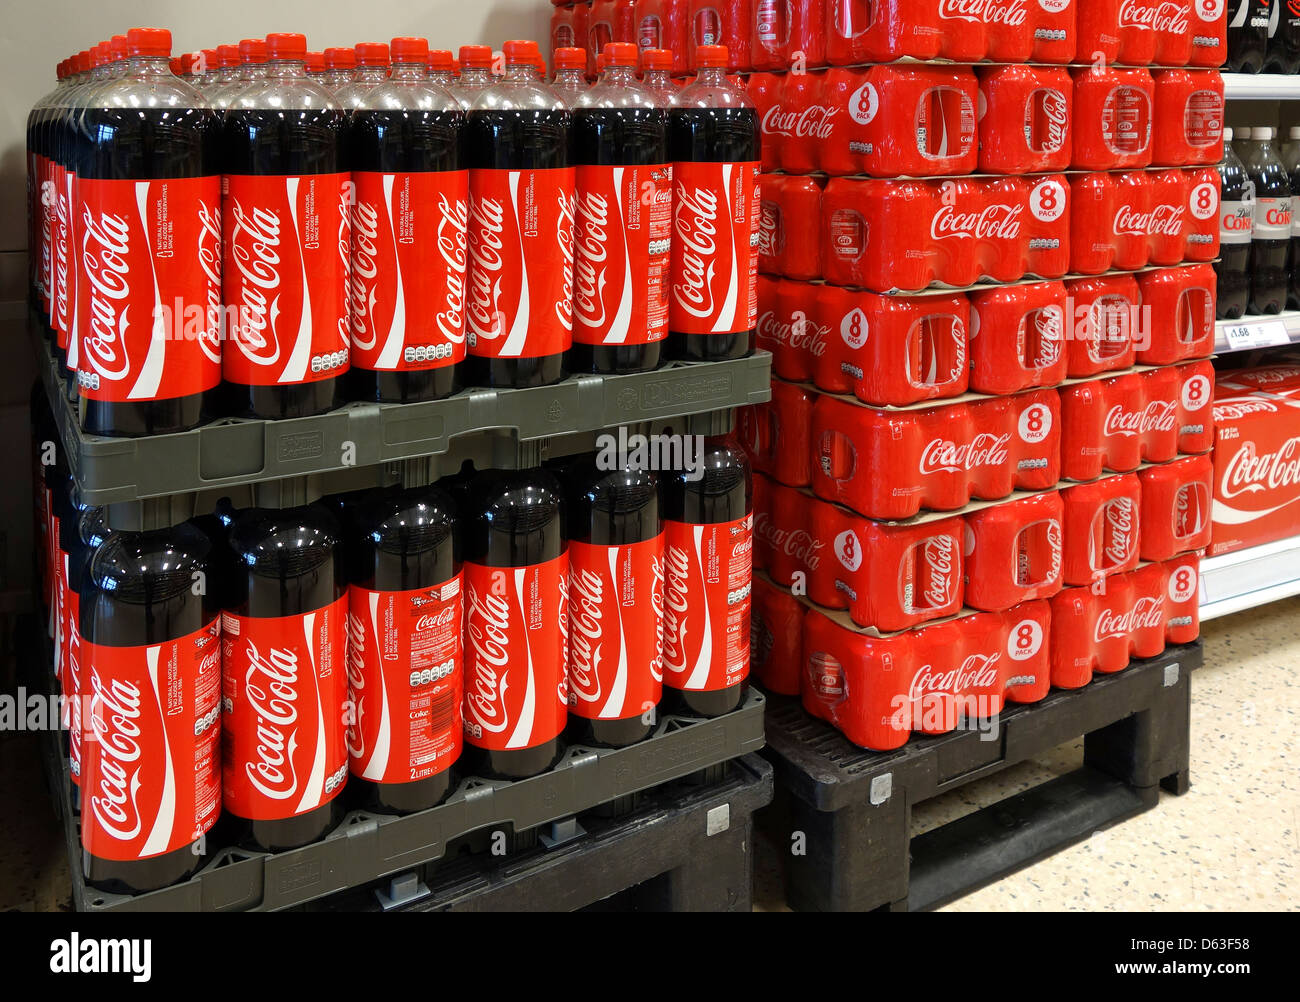 Bottles and cans of Coca-Cola in a supermarket - Stock Image